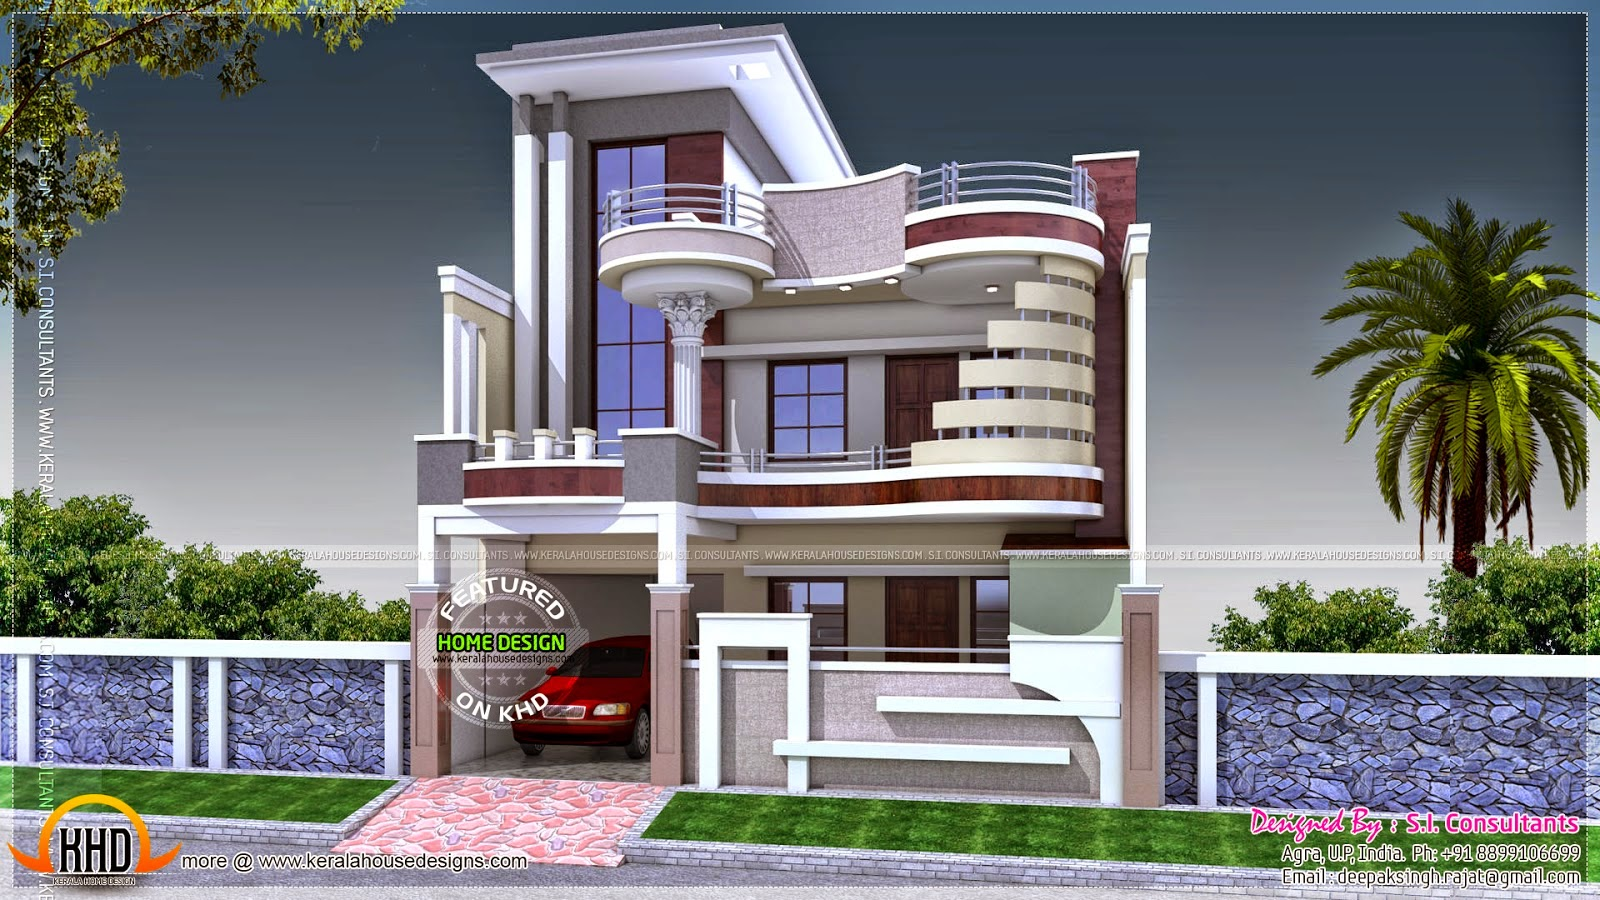 Tropicalizer indian house design Home design